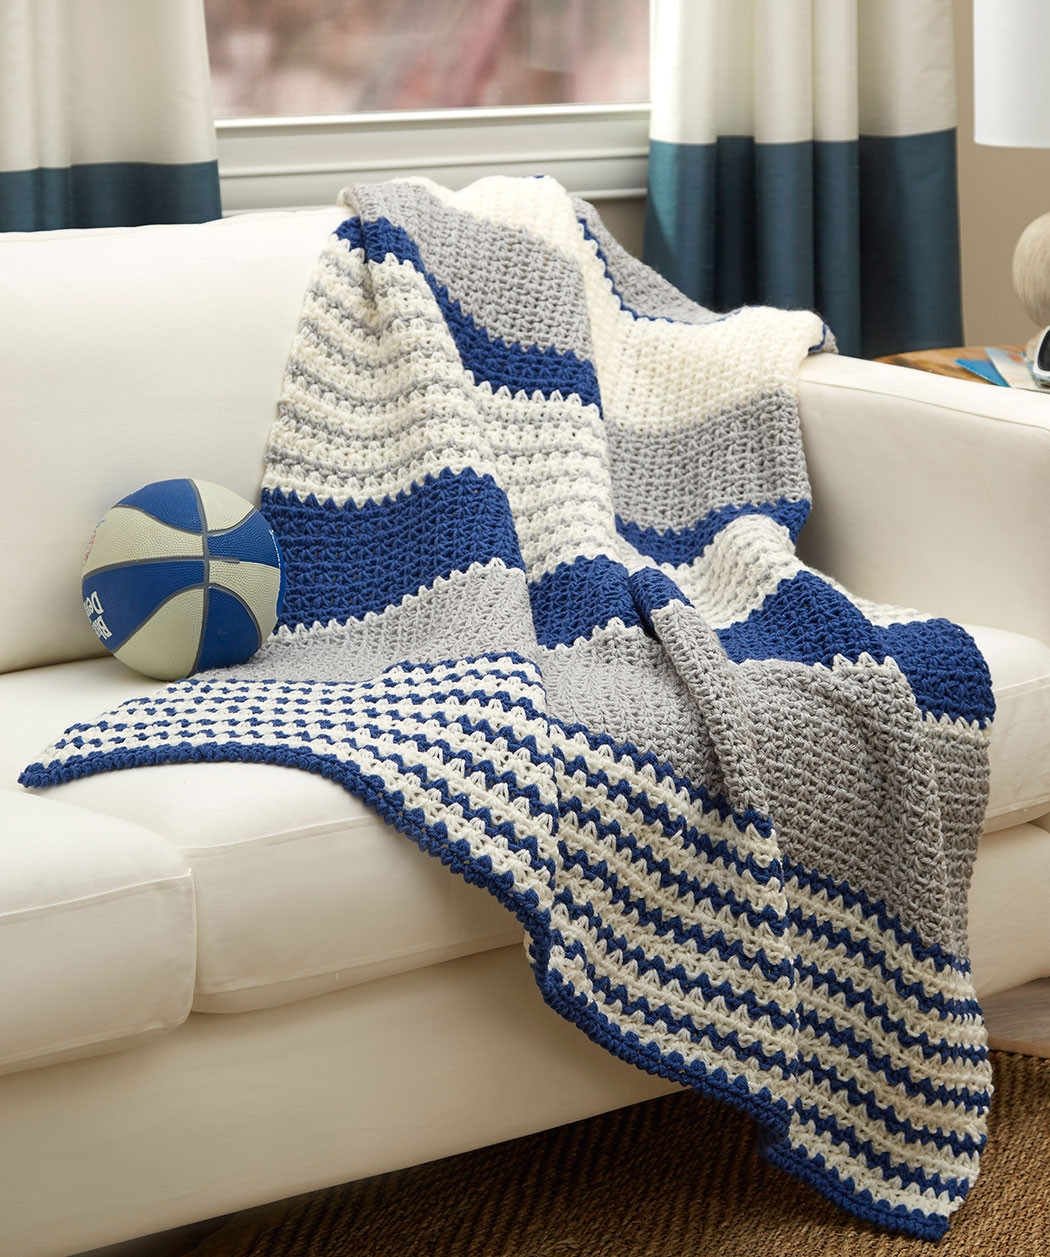 Awesome 2017 Natcromo Blog tour March 22 Red Heart Yarns Red Heart Free Crochet Afghan Patterns Of Great 49 Ideas Red Heart Free Crochet Afghan Patterns